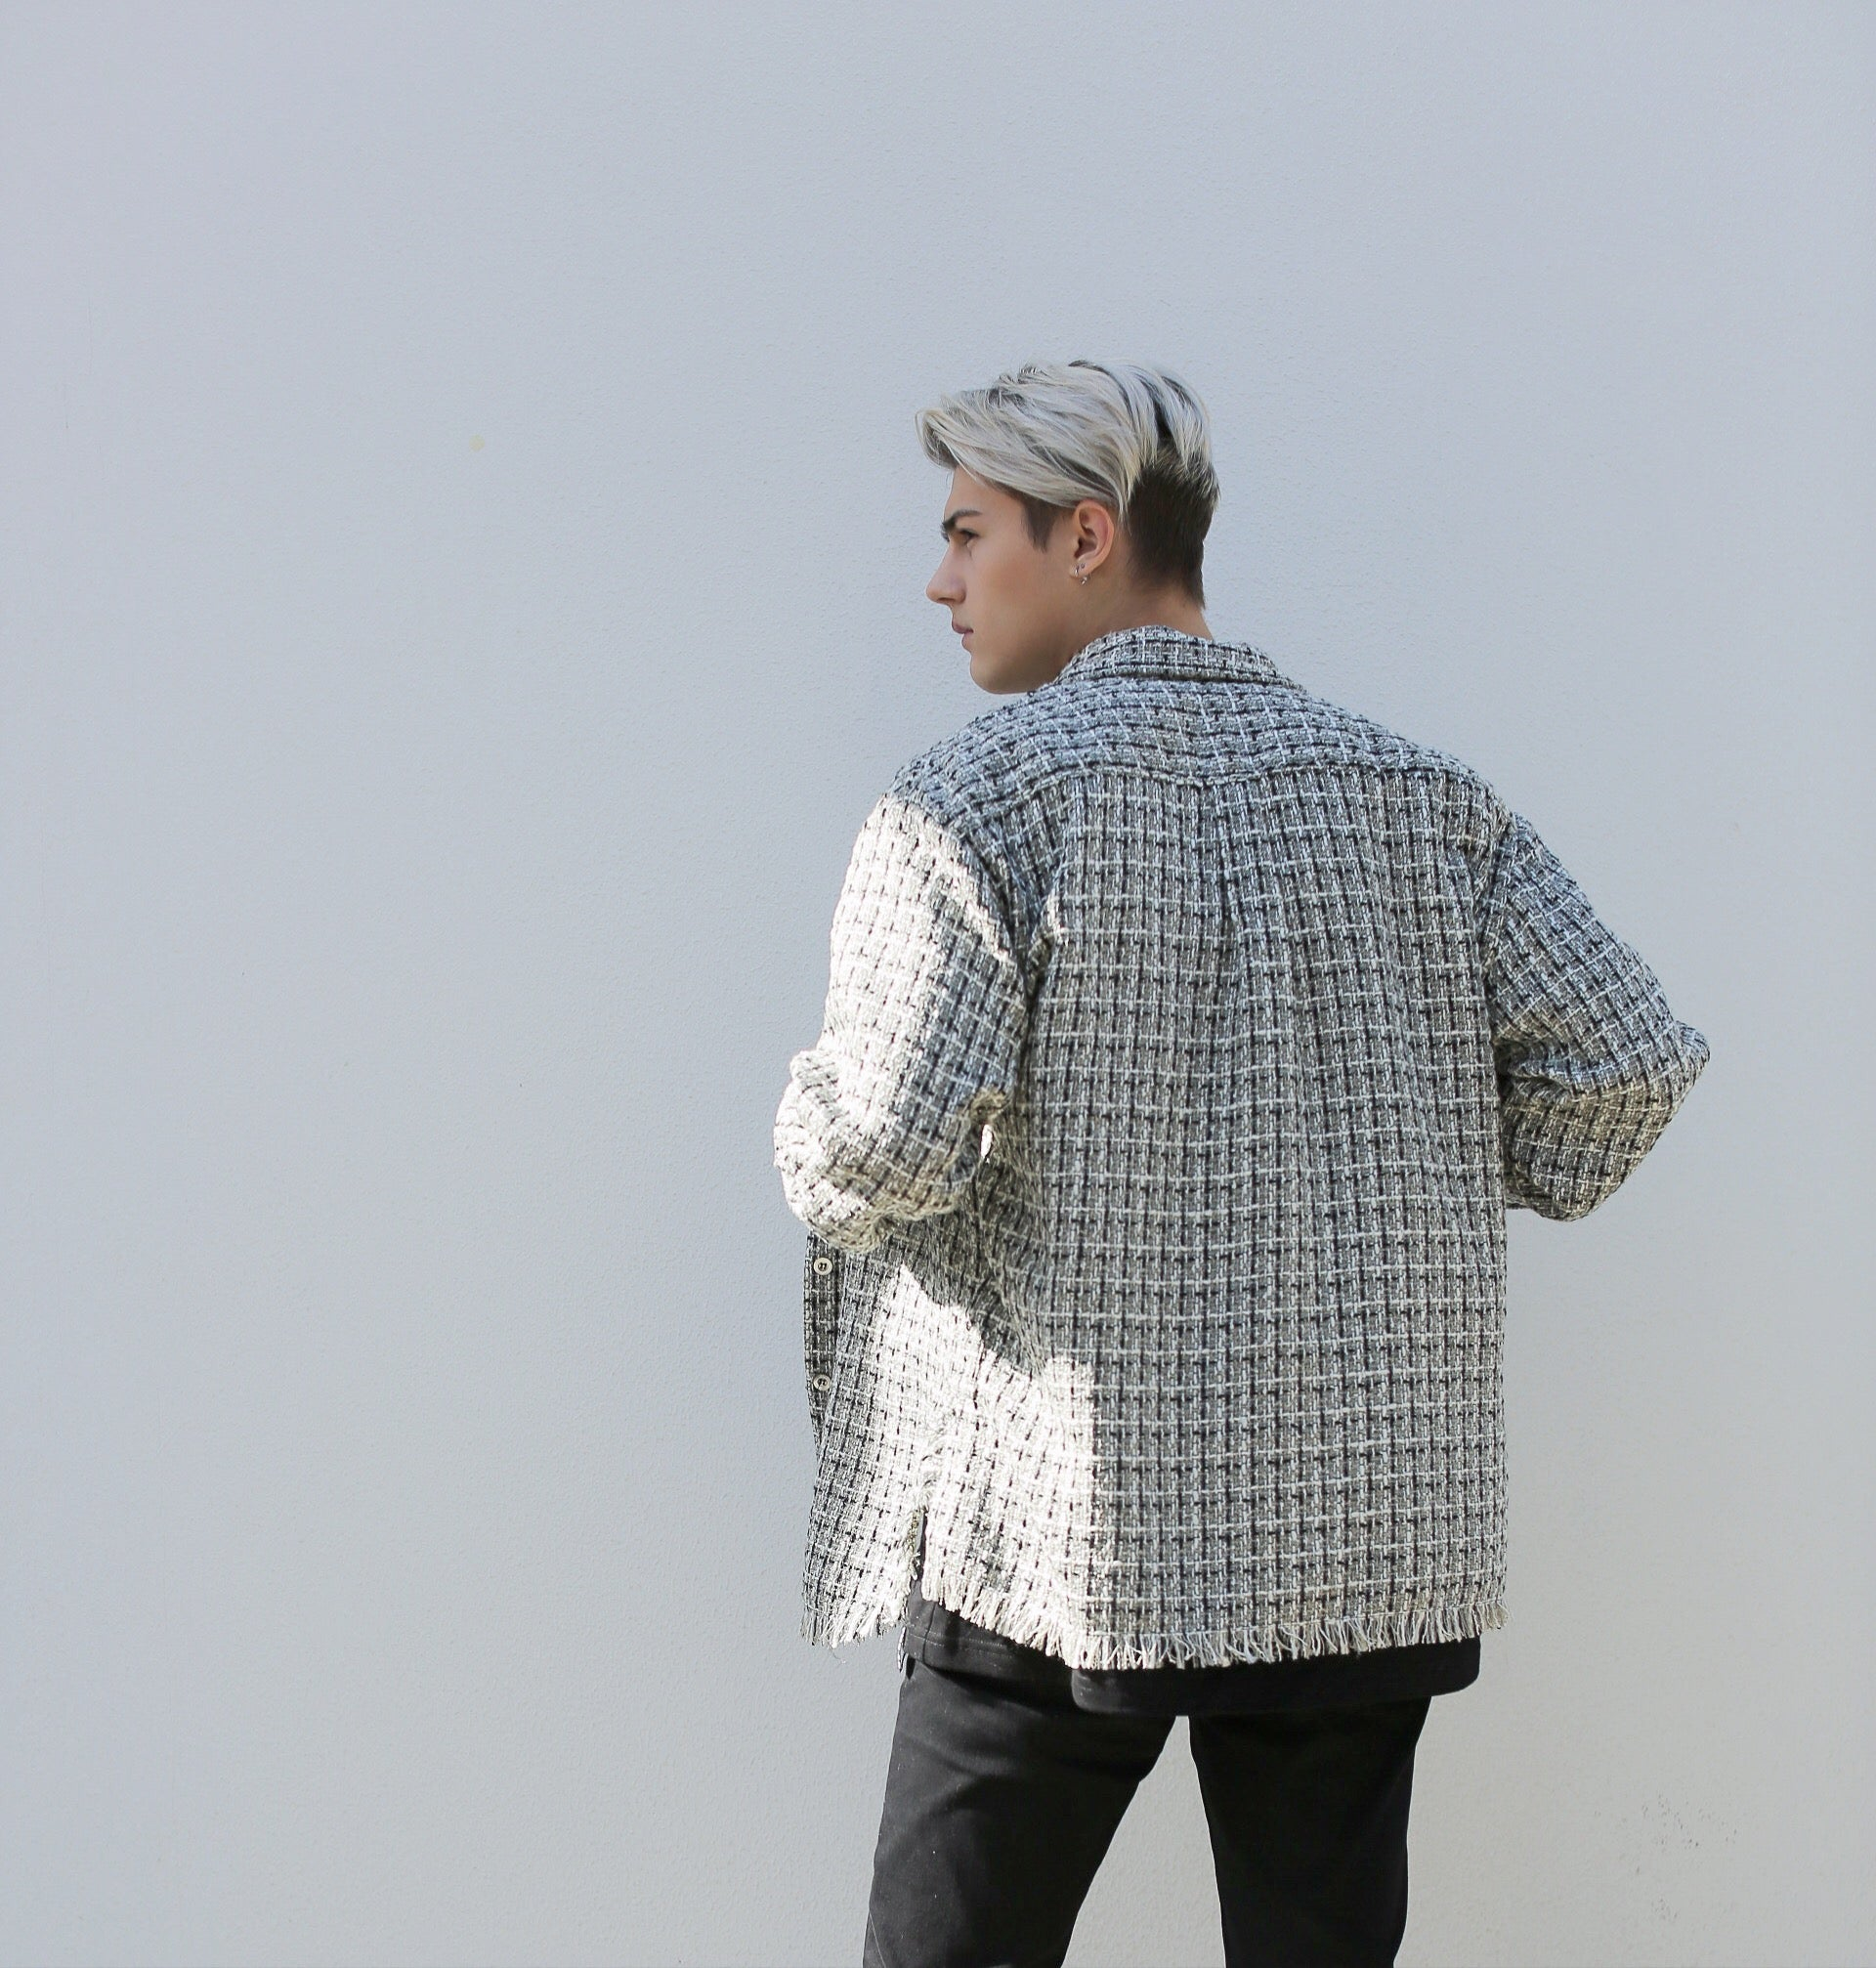 【Non-traditonalism】Wool-tweed Overshirt | Tone of Black&White